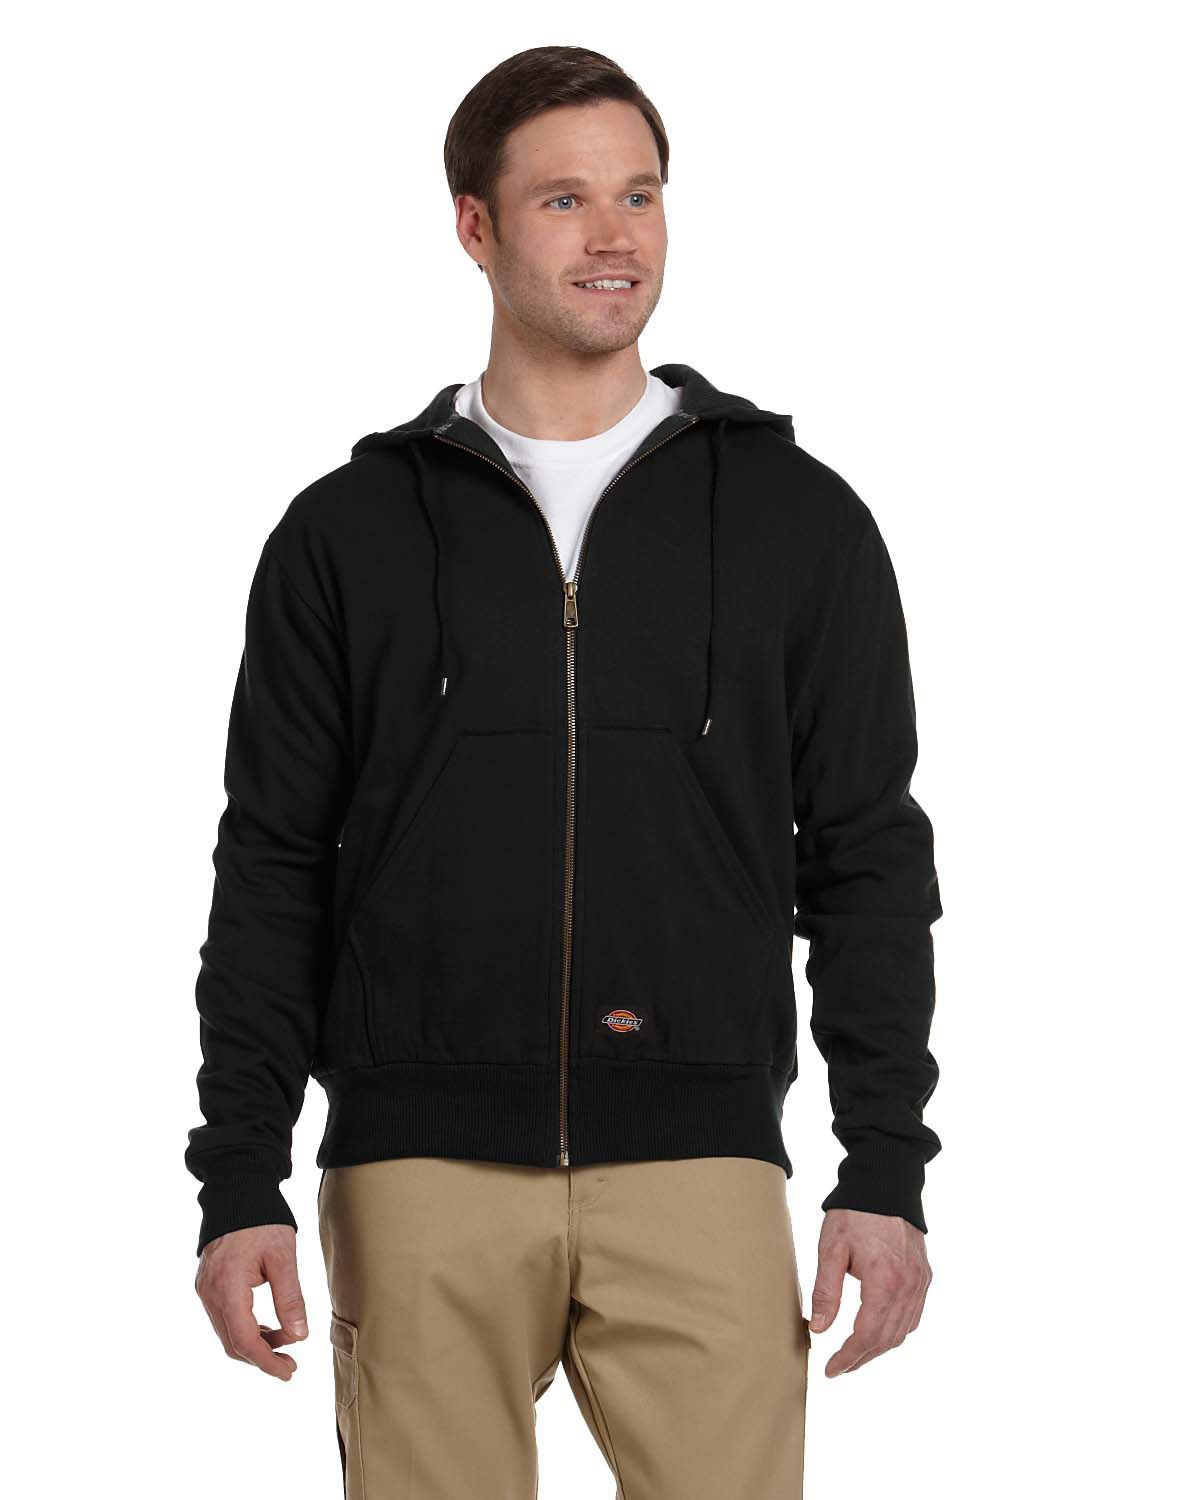 Dickies Men's Thermal Lined Fleece Hoodie - Black TW382